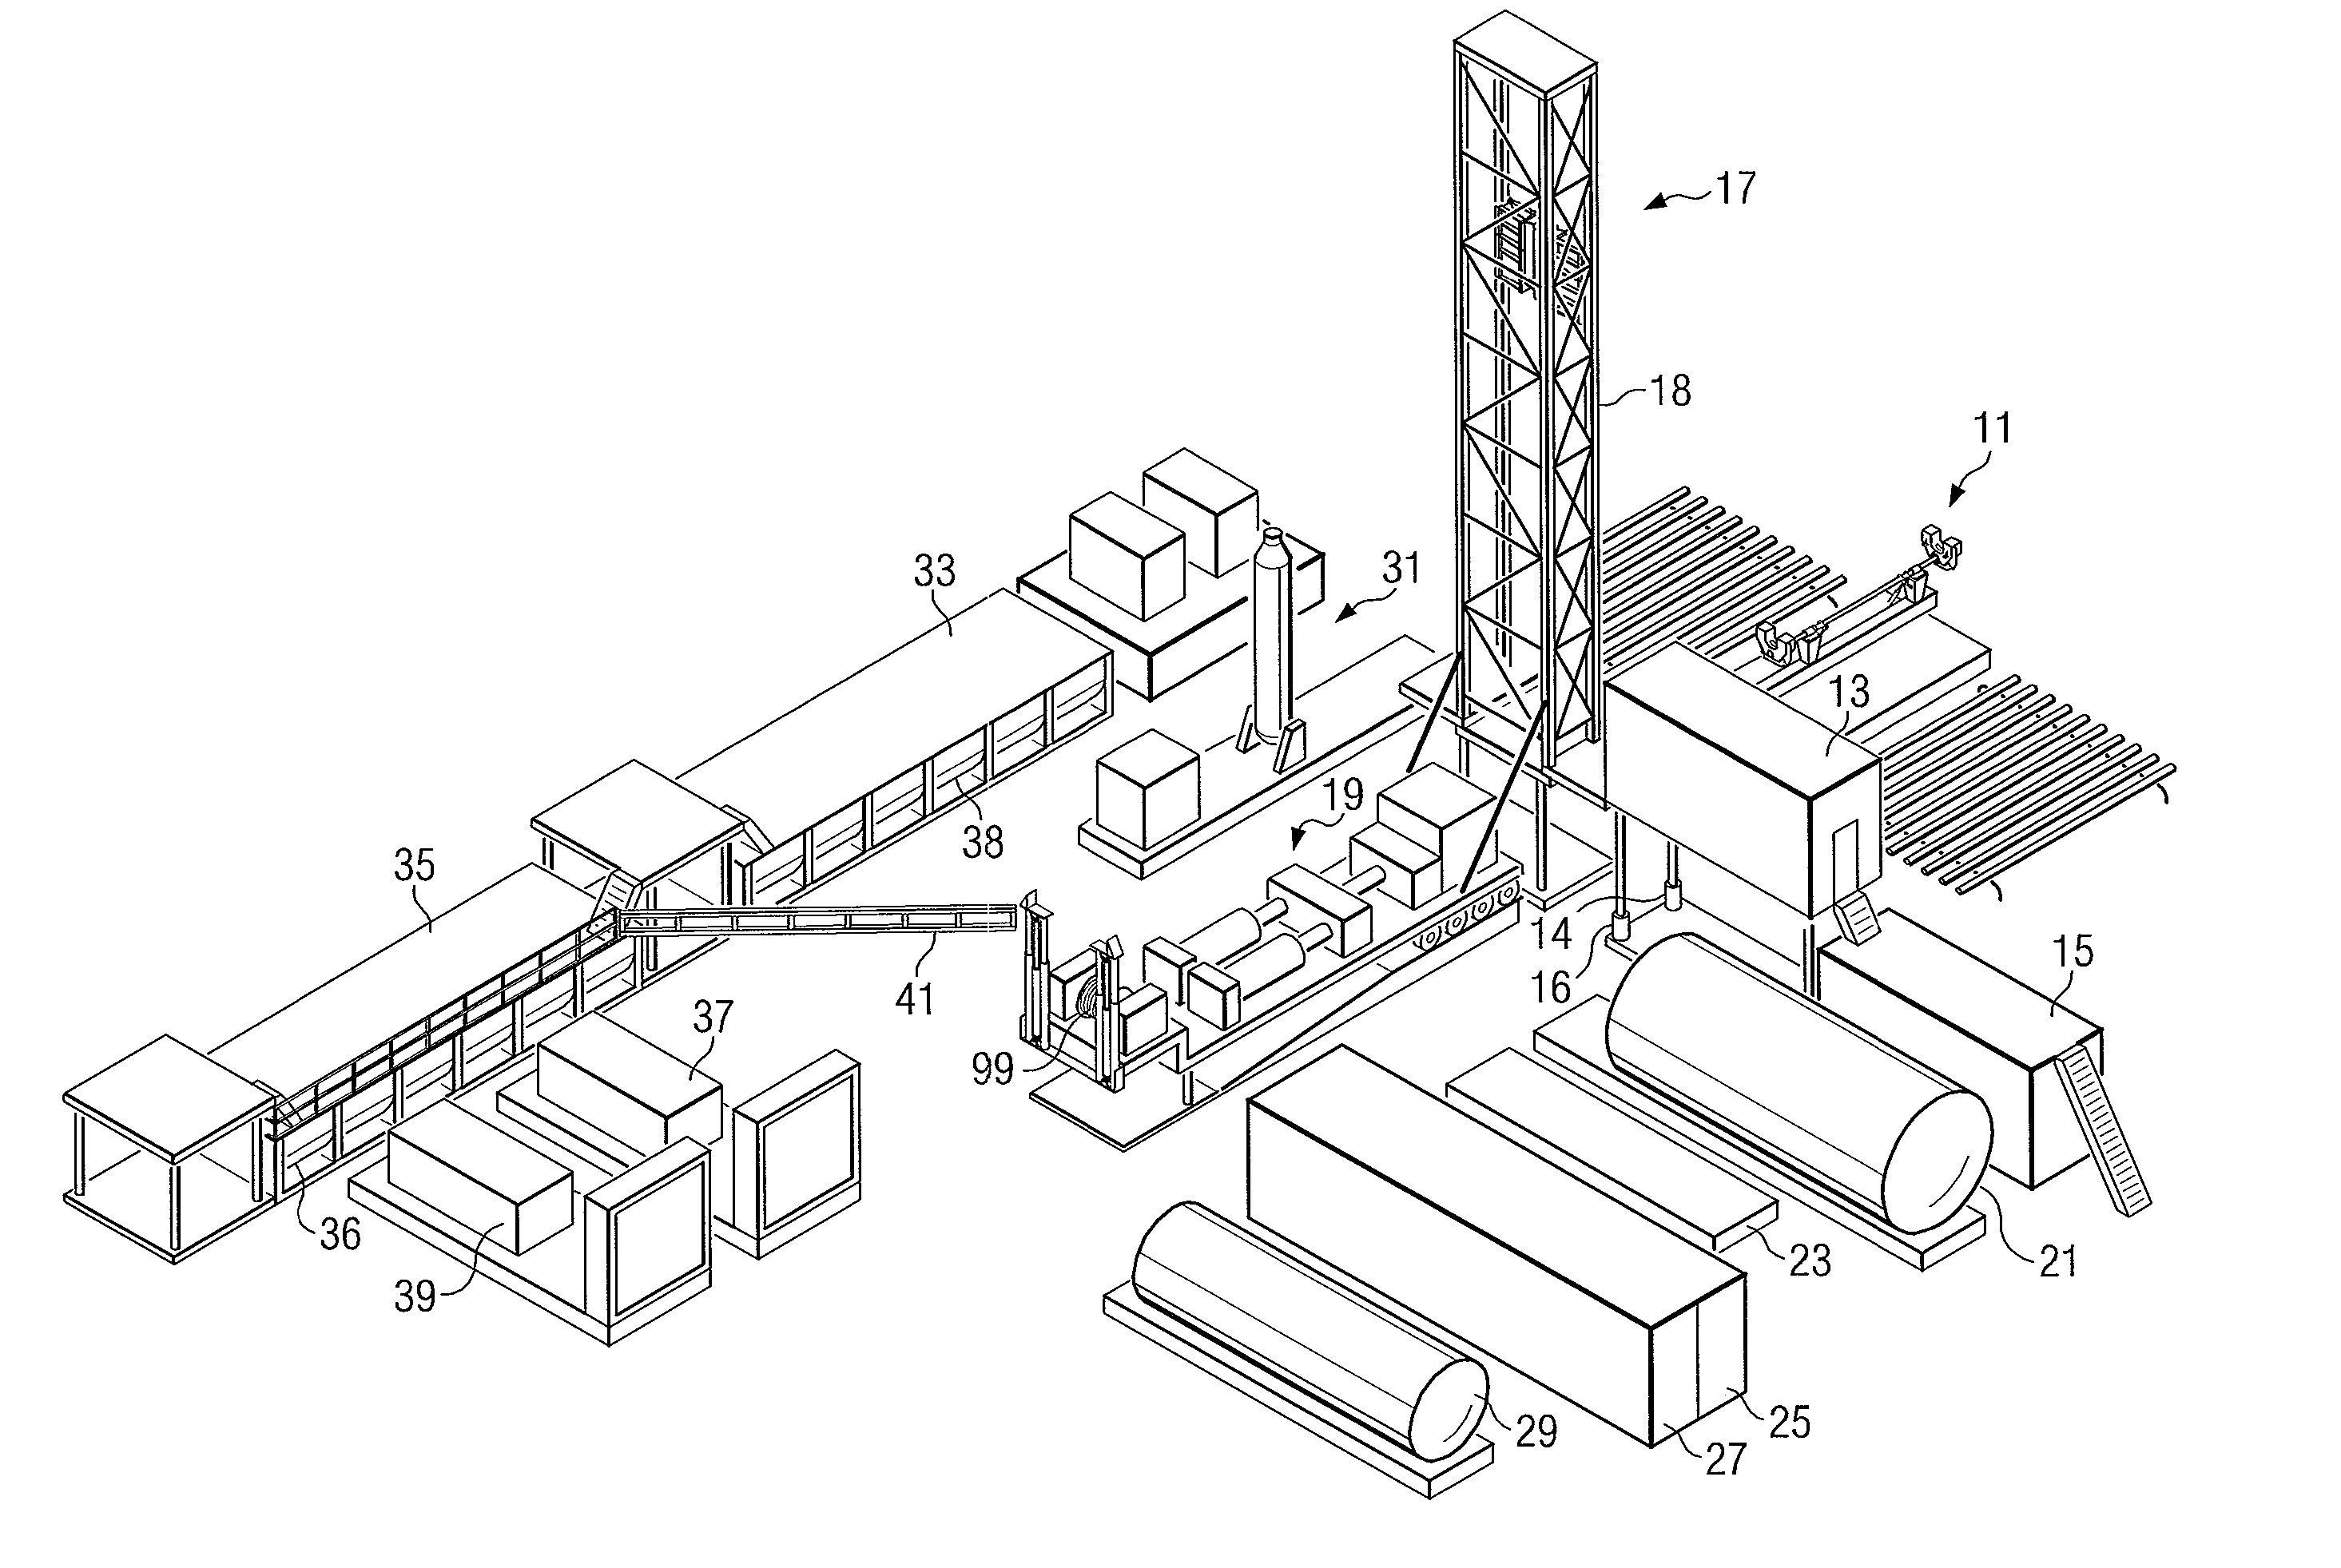 Oil Drilling Diagram